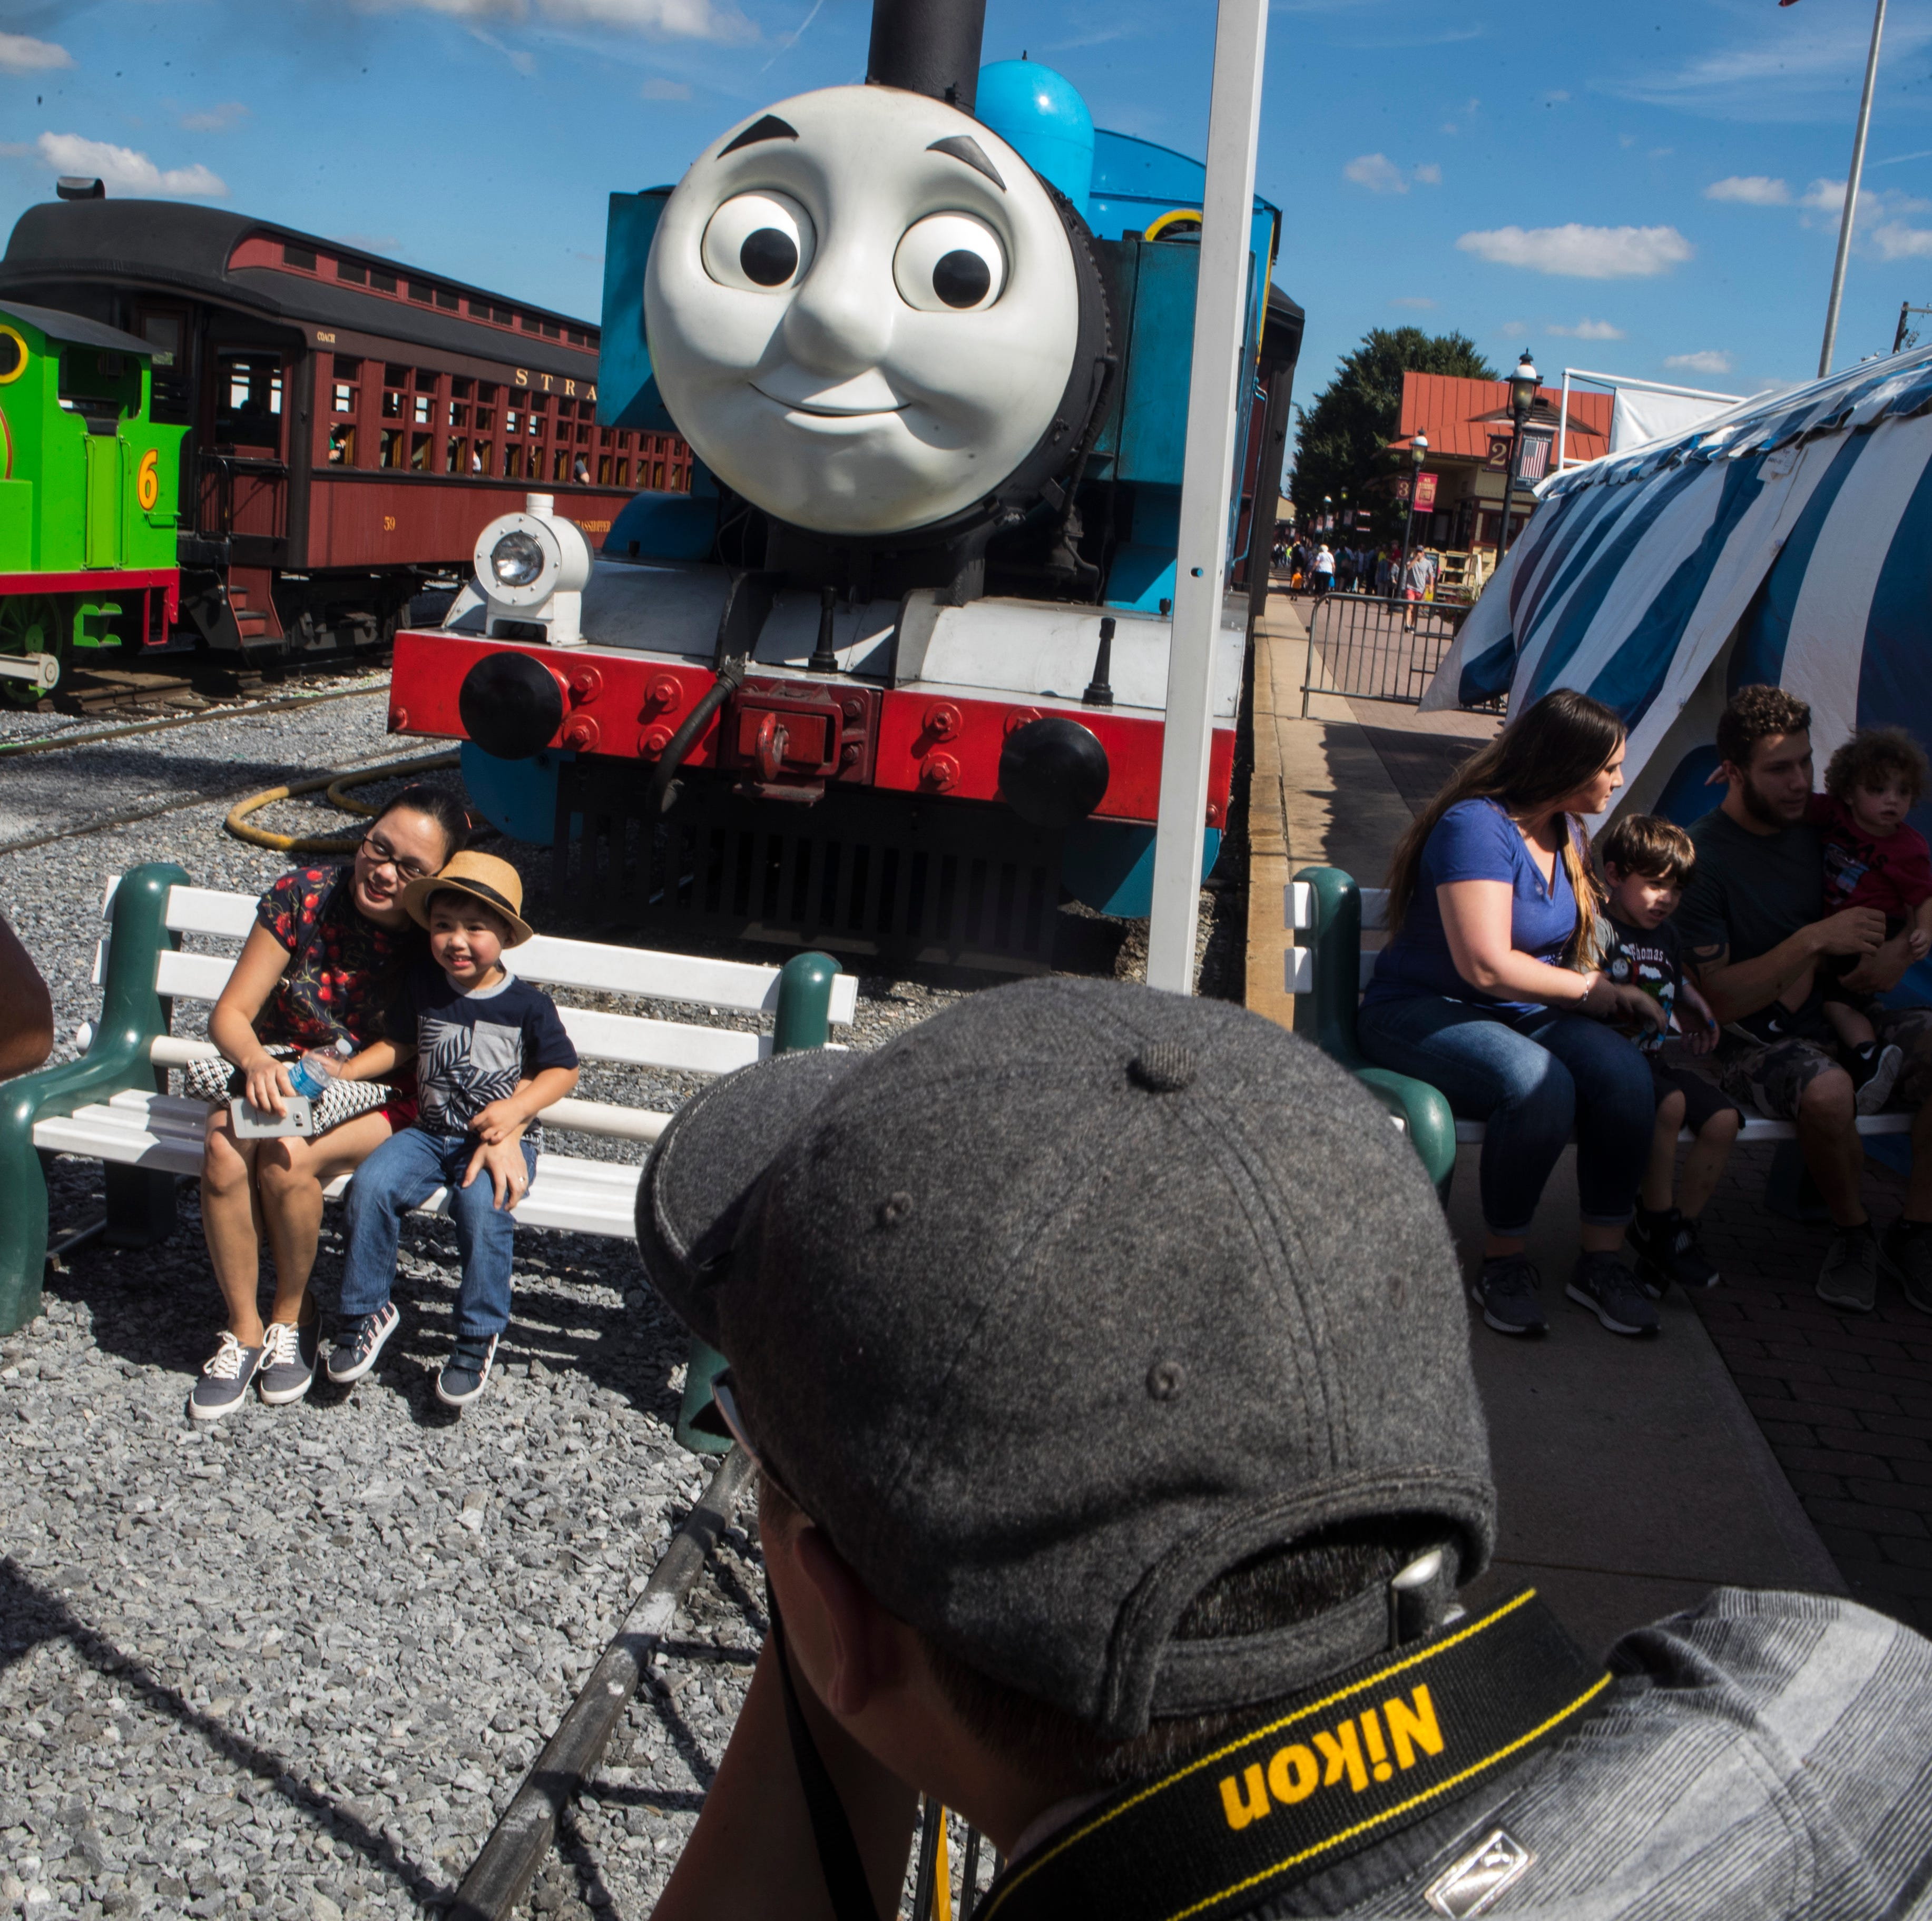 Thomas the Tank Engine is real, and you can meet him